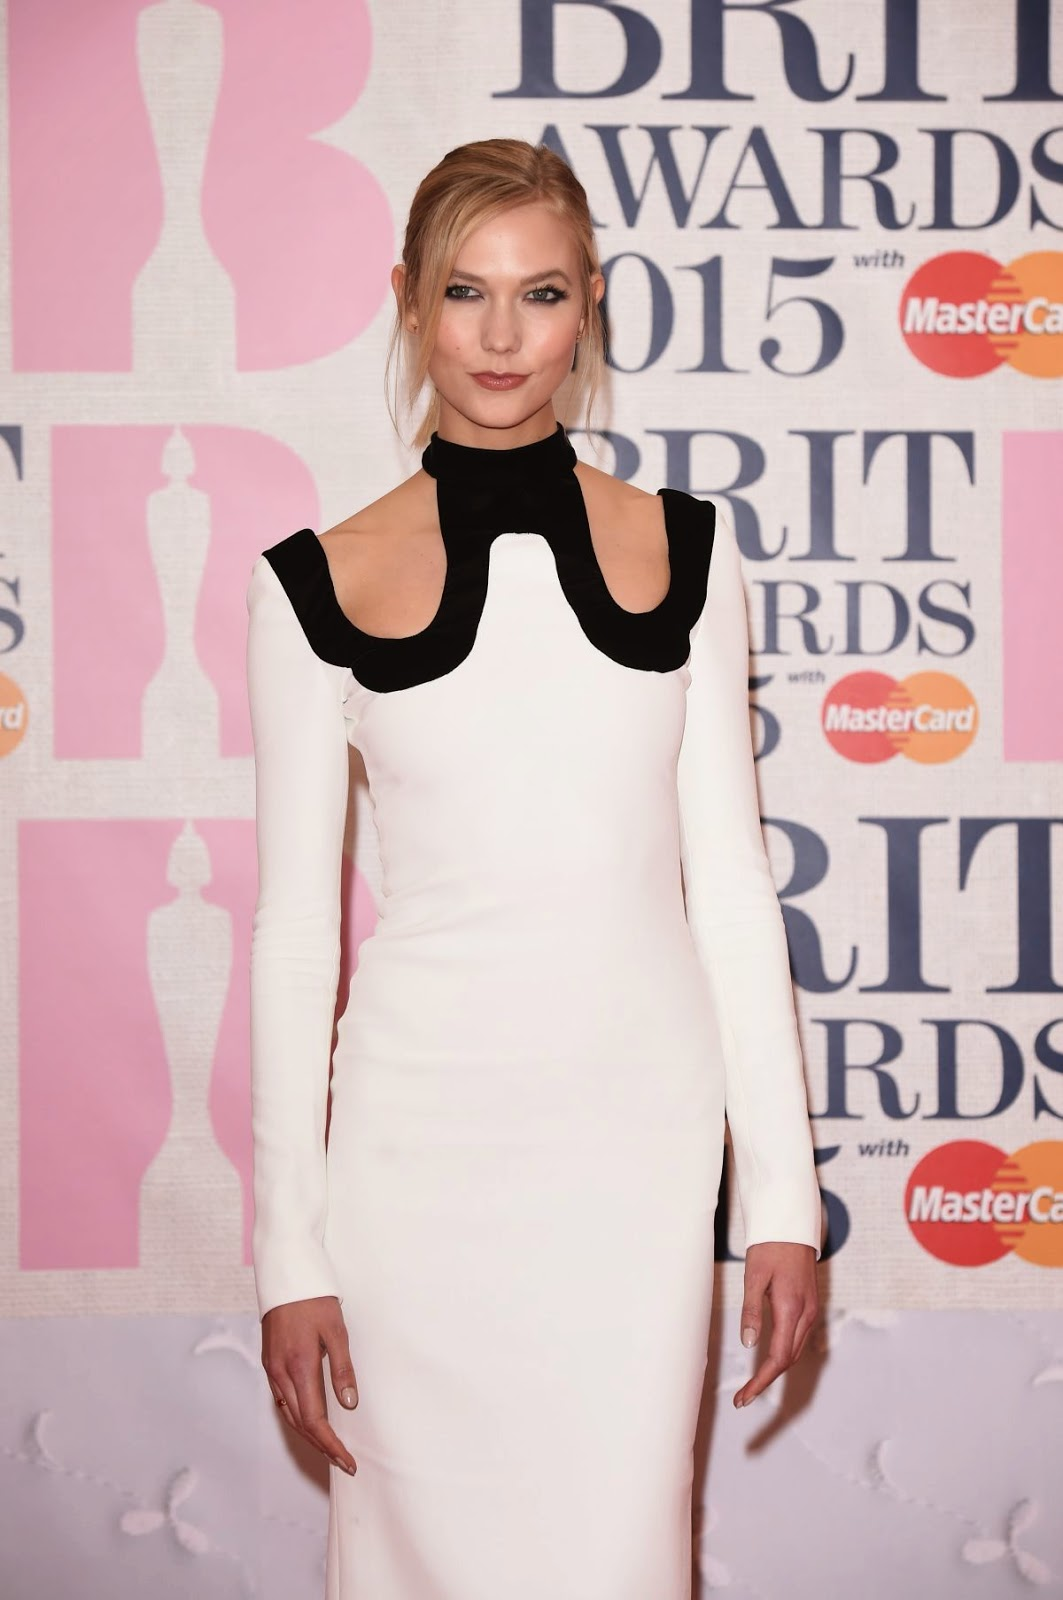 Fashion Model: Karlie Kloss - Brit Awards 2015 In London